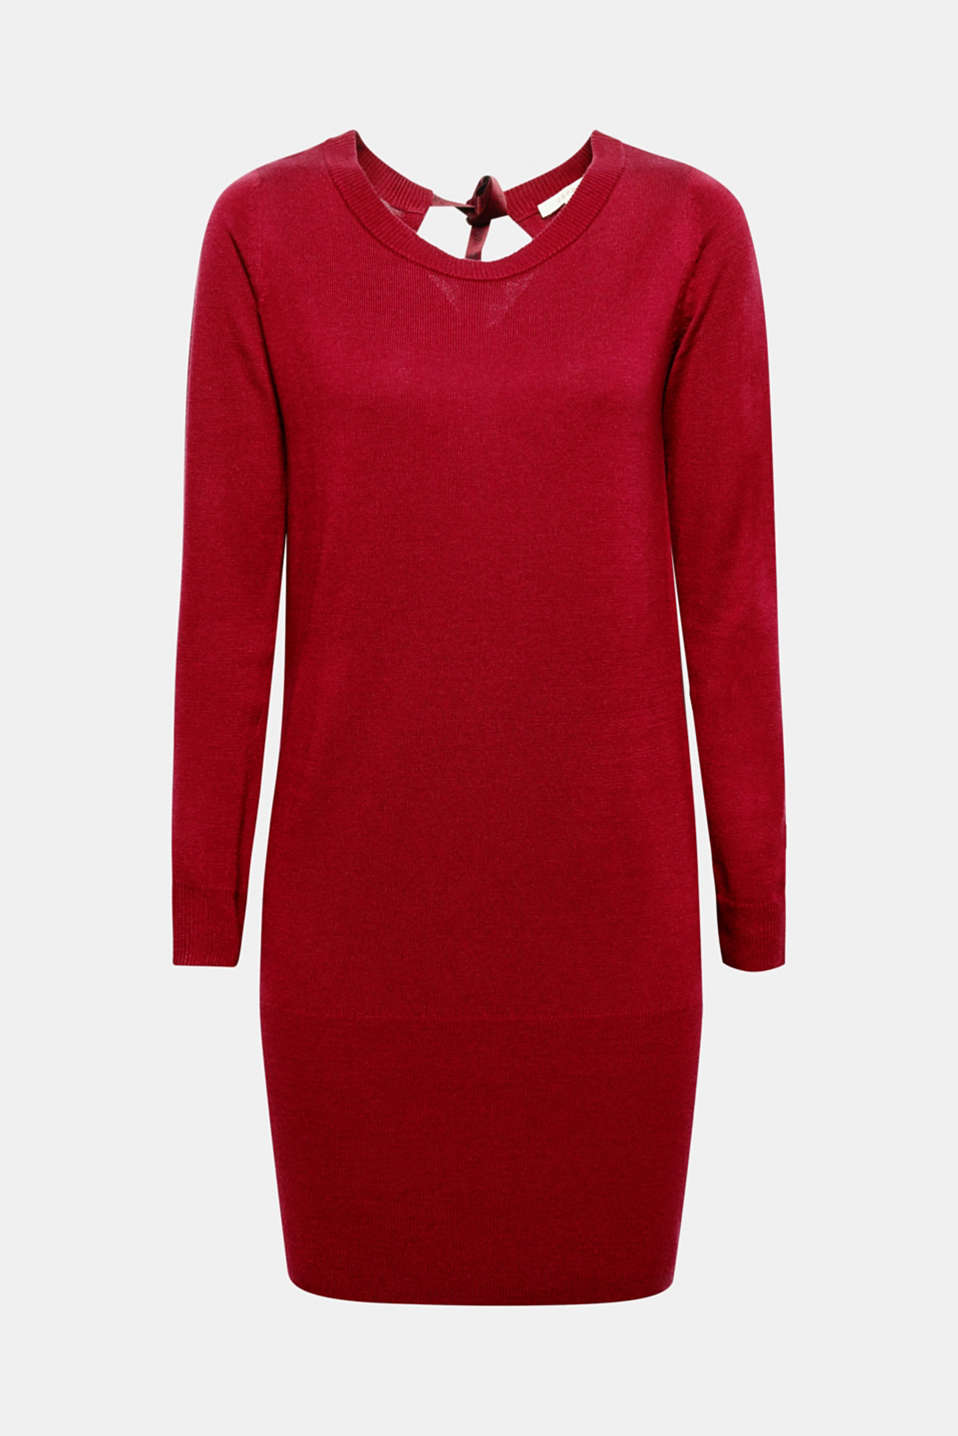 Made with love! A statement on the decorative band at the nape of this casual knitted dress.